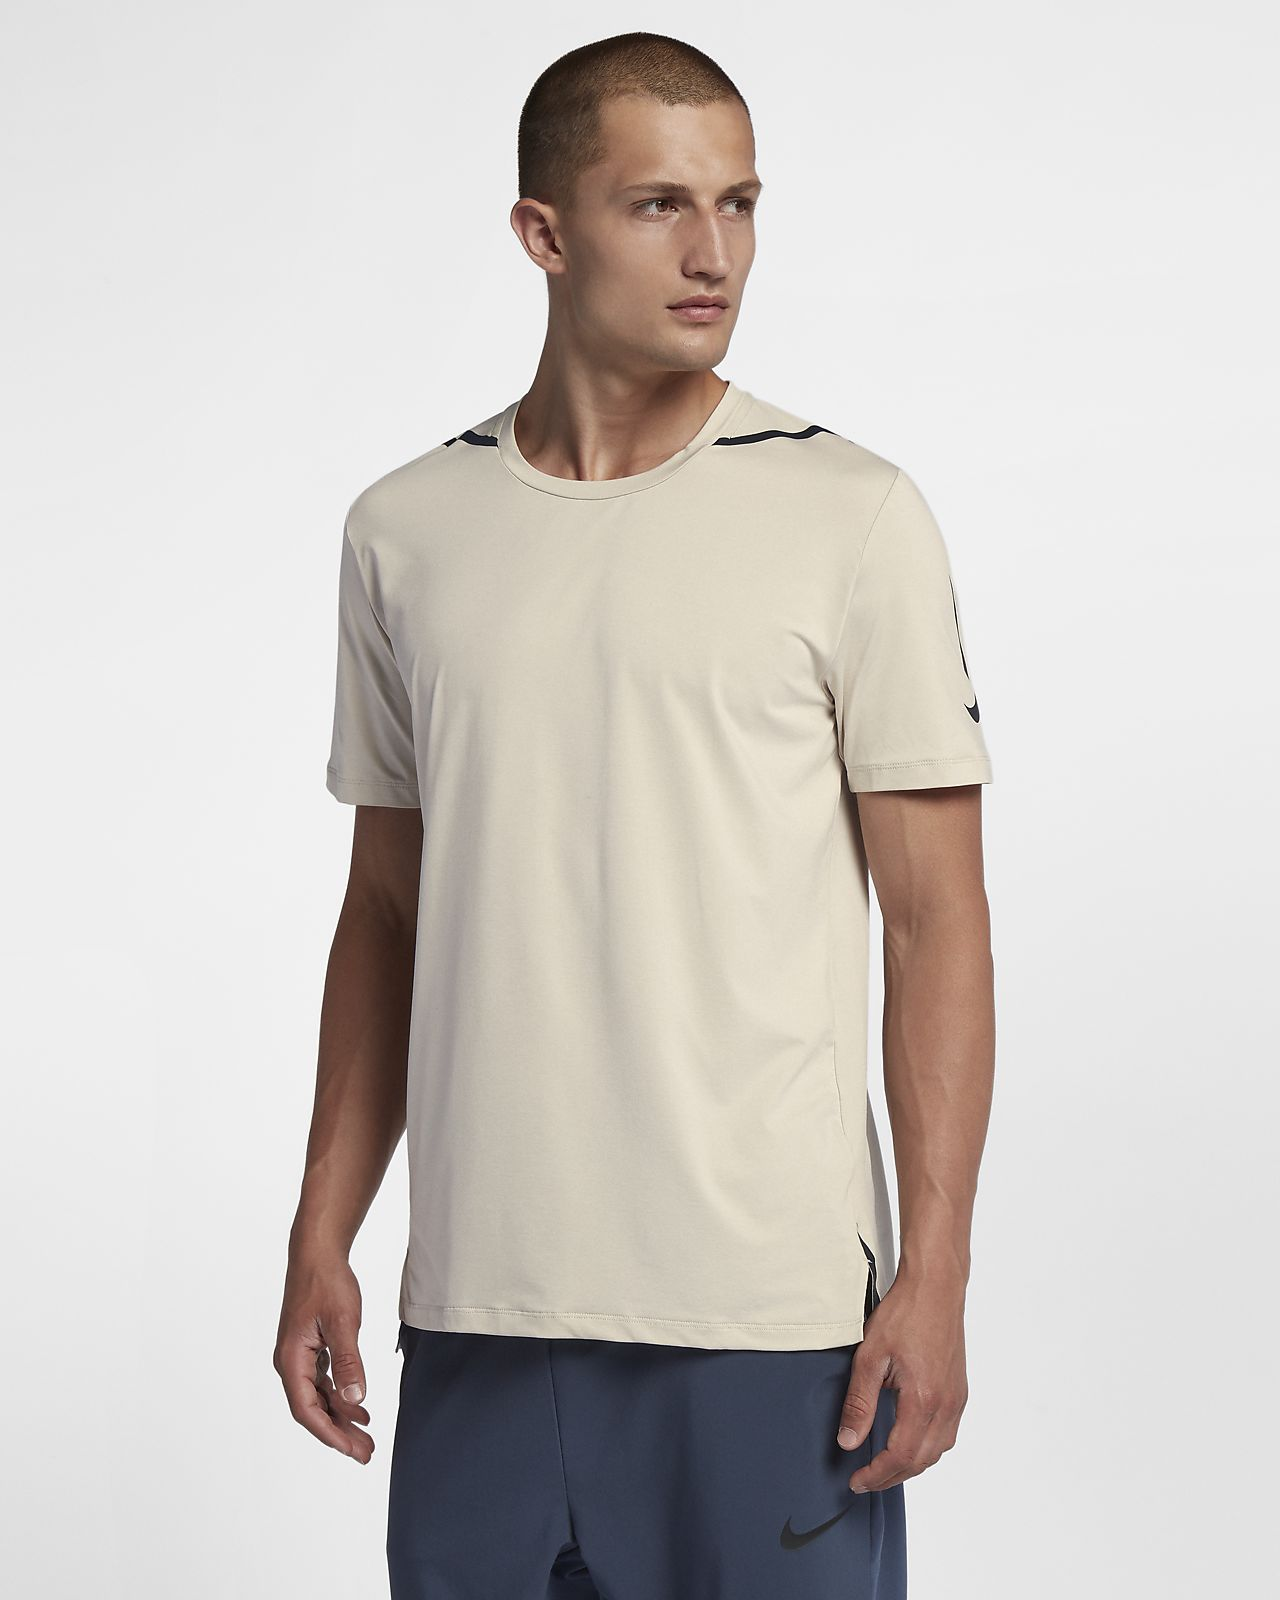 Nike Dri-FIT Premium Men's Short-Sleeve Training Top